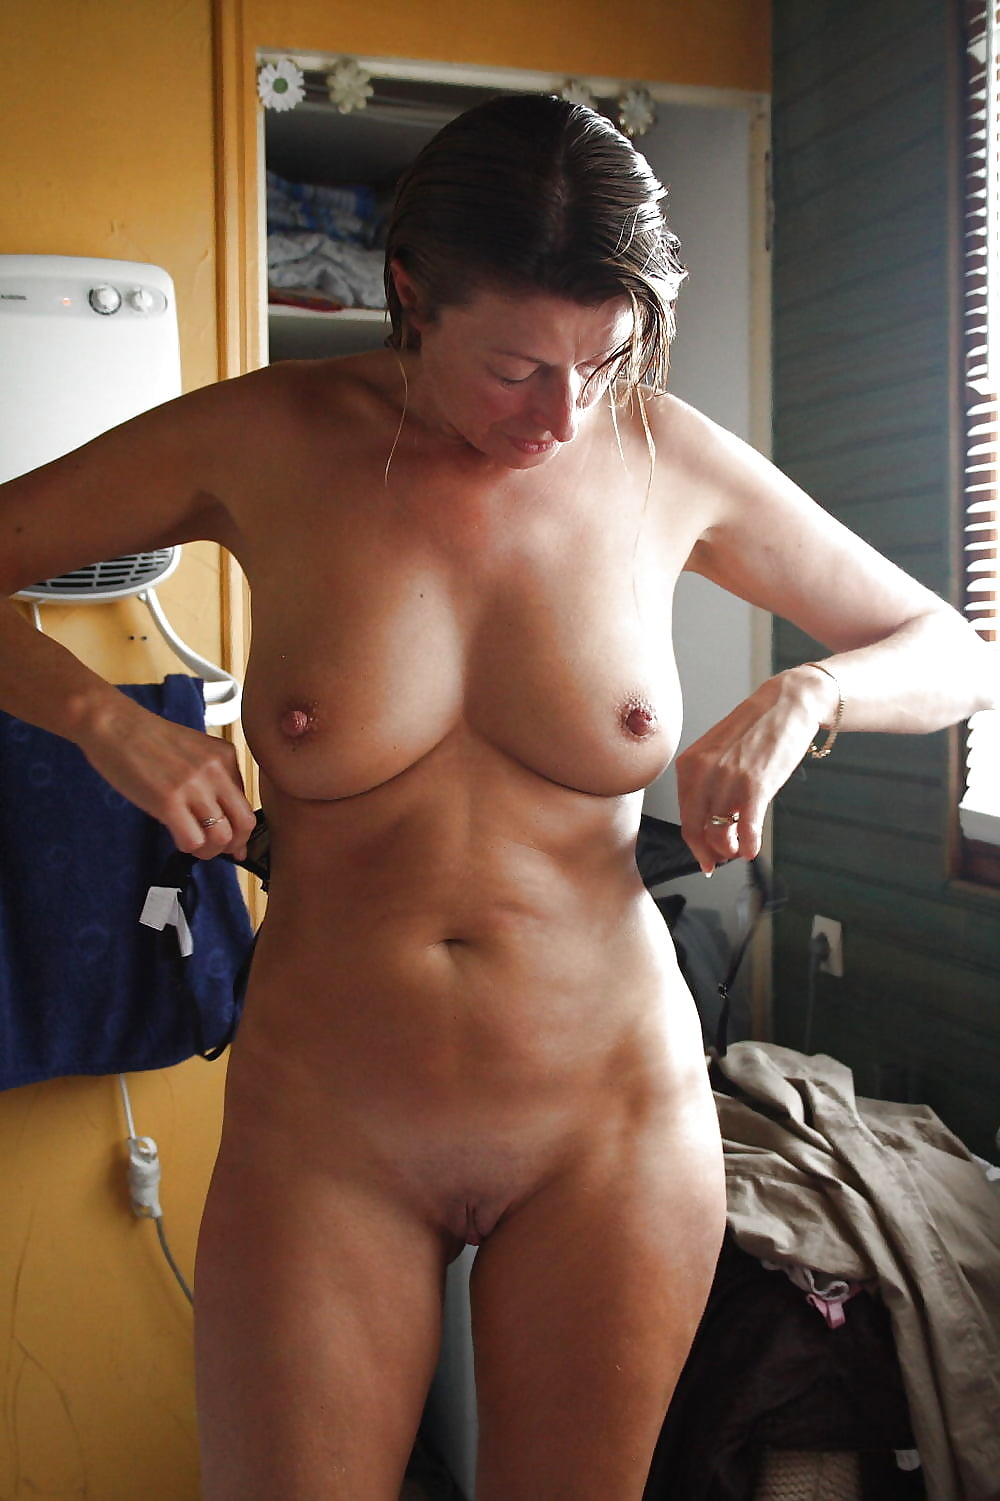 Naked Young Girl Unaware Recorded In The Shower